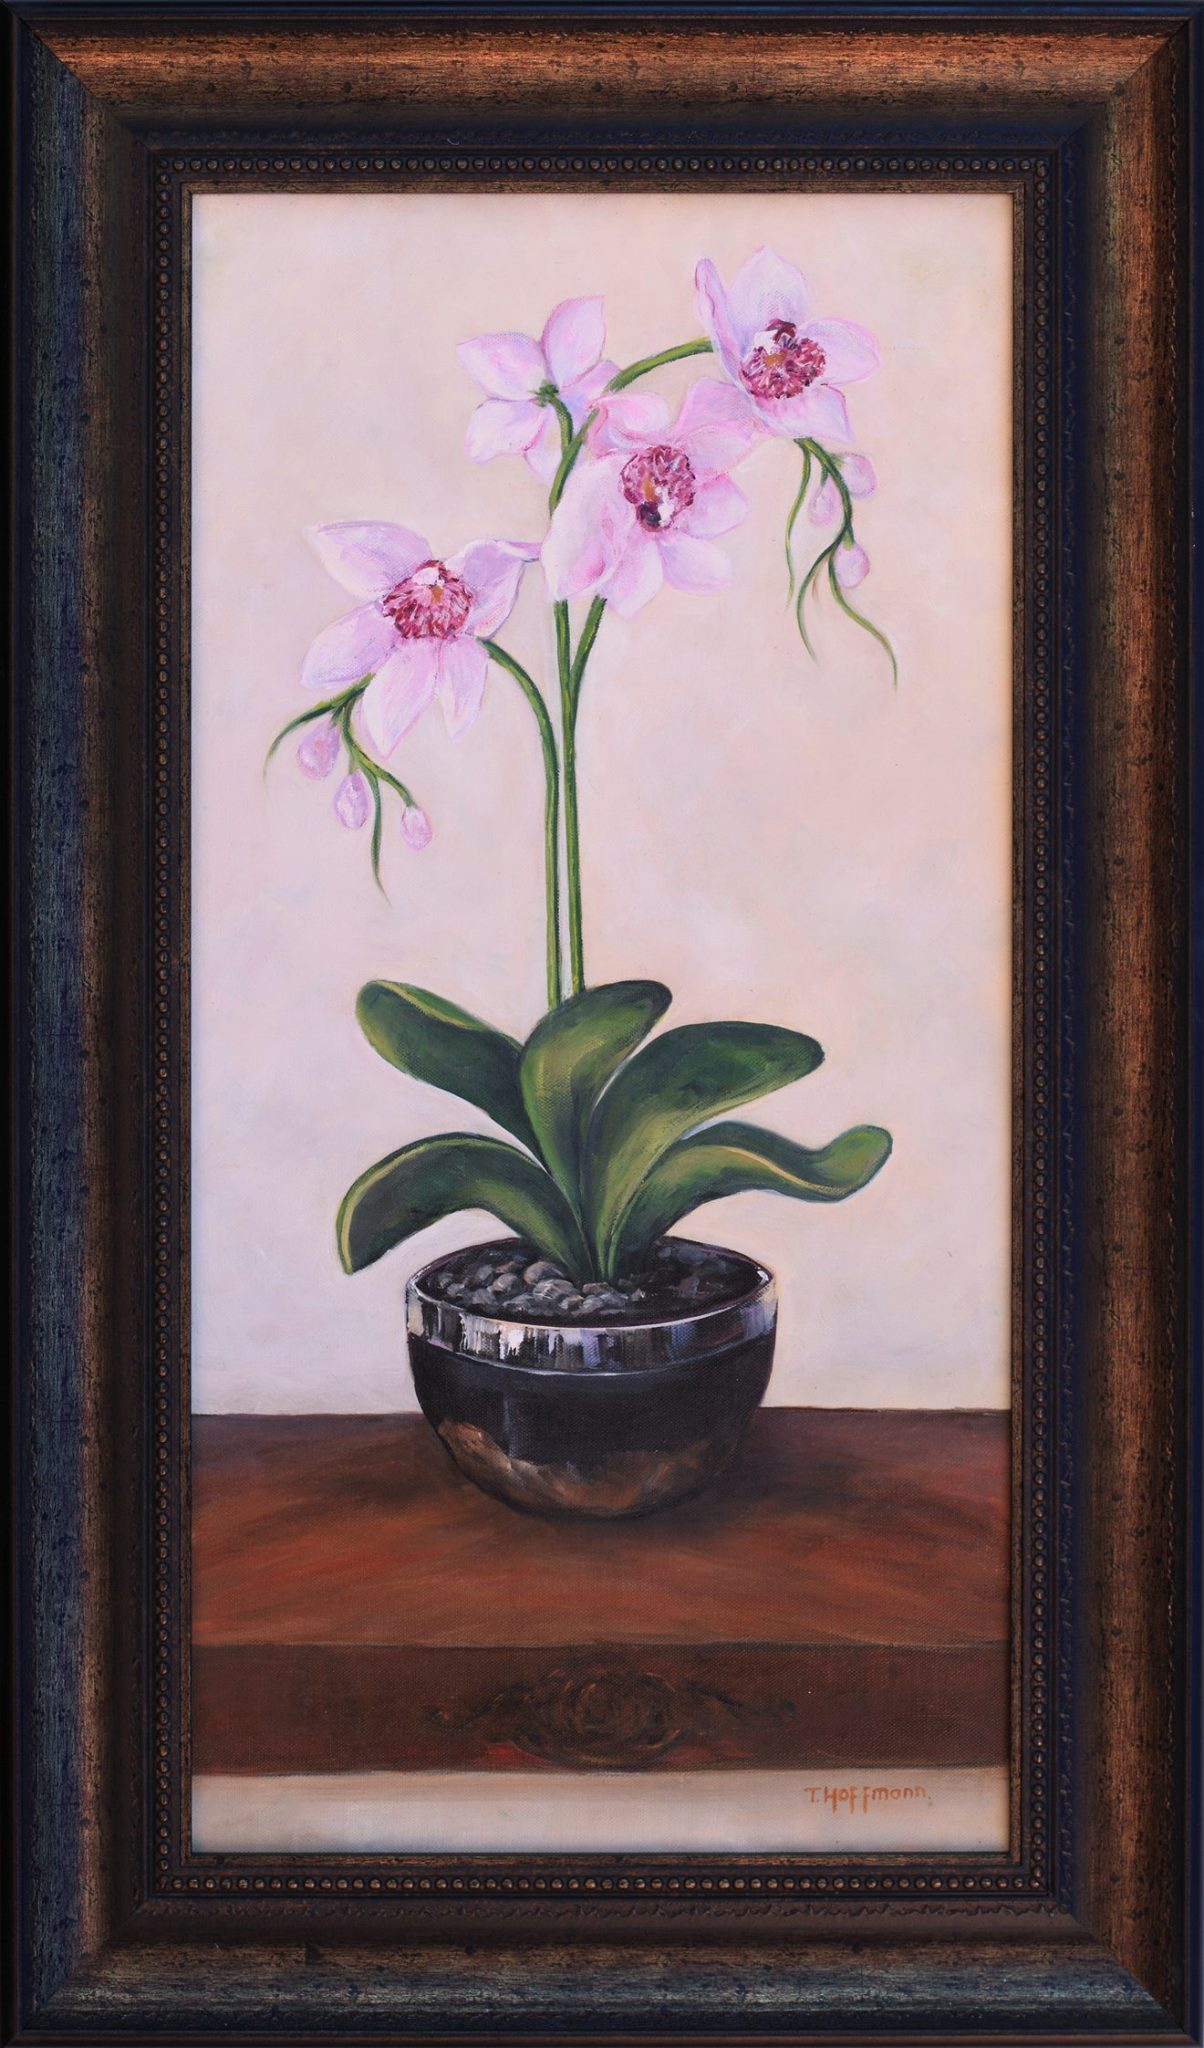 Tersia Hoffmann art, tersiahoffmann, tersia hoffmann south african art, tersia hoffmann oil painting for sale, tersia hoffmann best price, crouse art gallery, crouse art dealers, south african art gallery